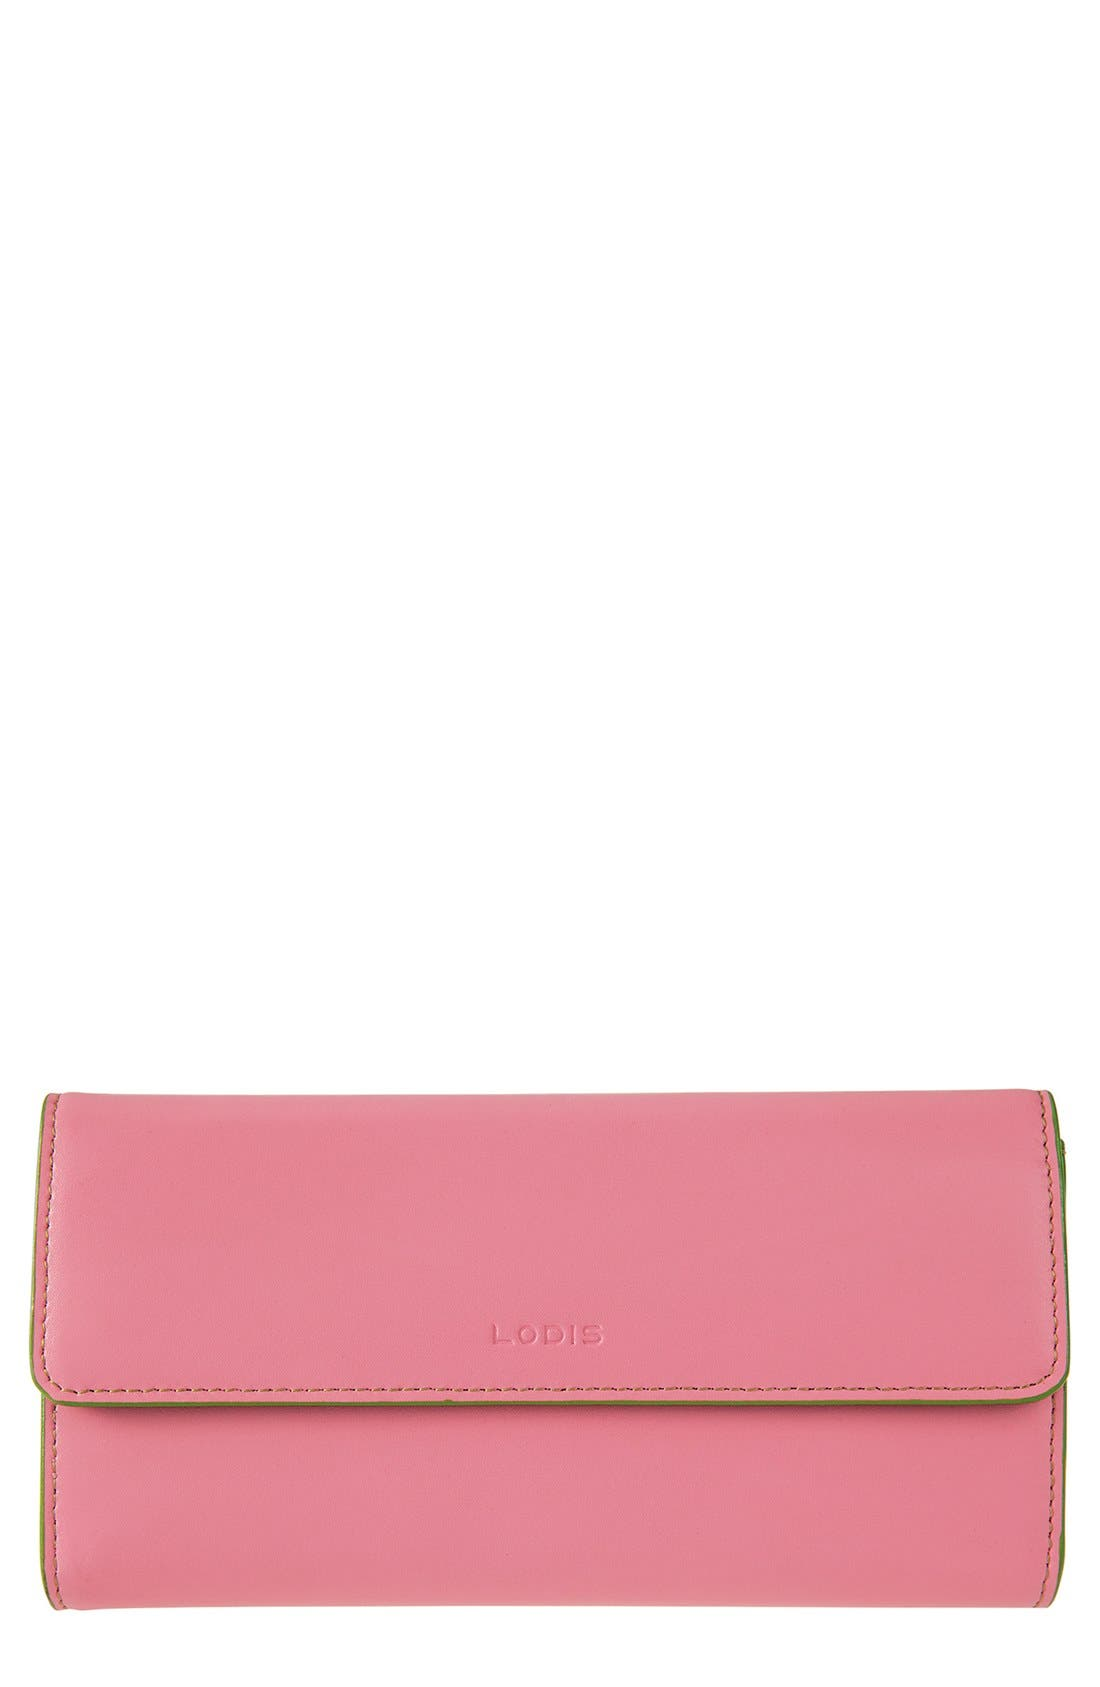 Main Image - Lodis 'Audrey' Checkbook Clutch Wallet